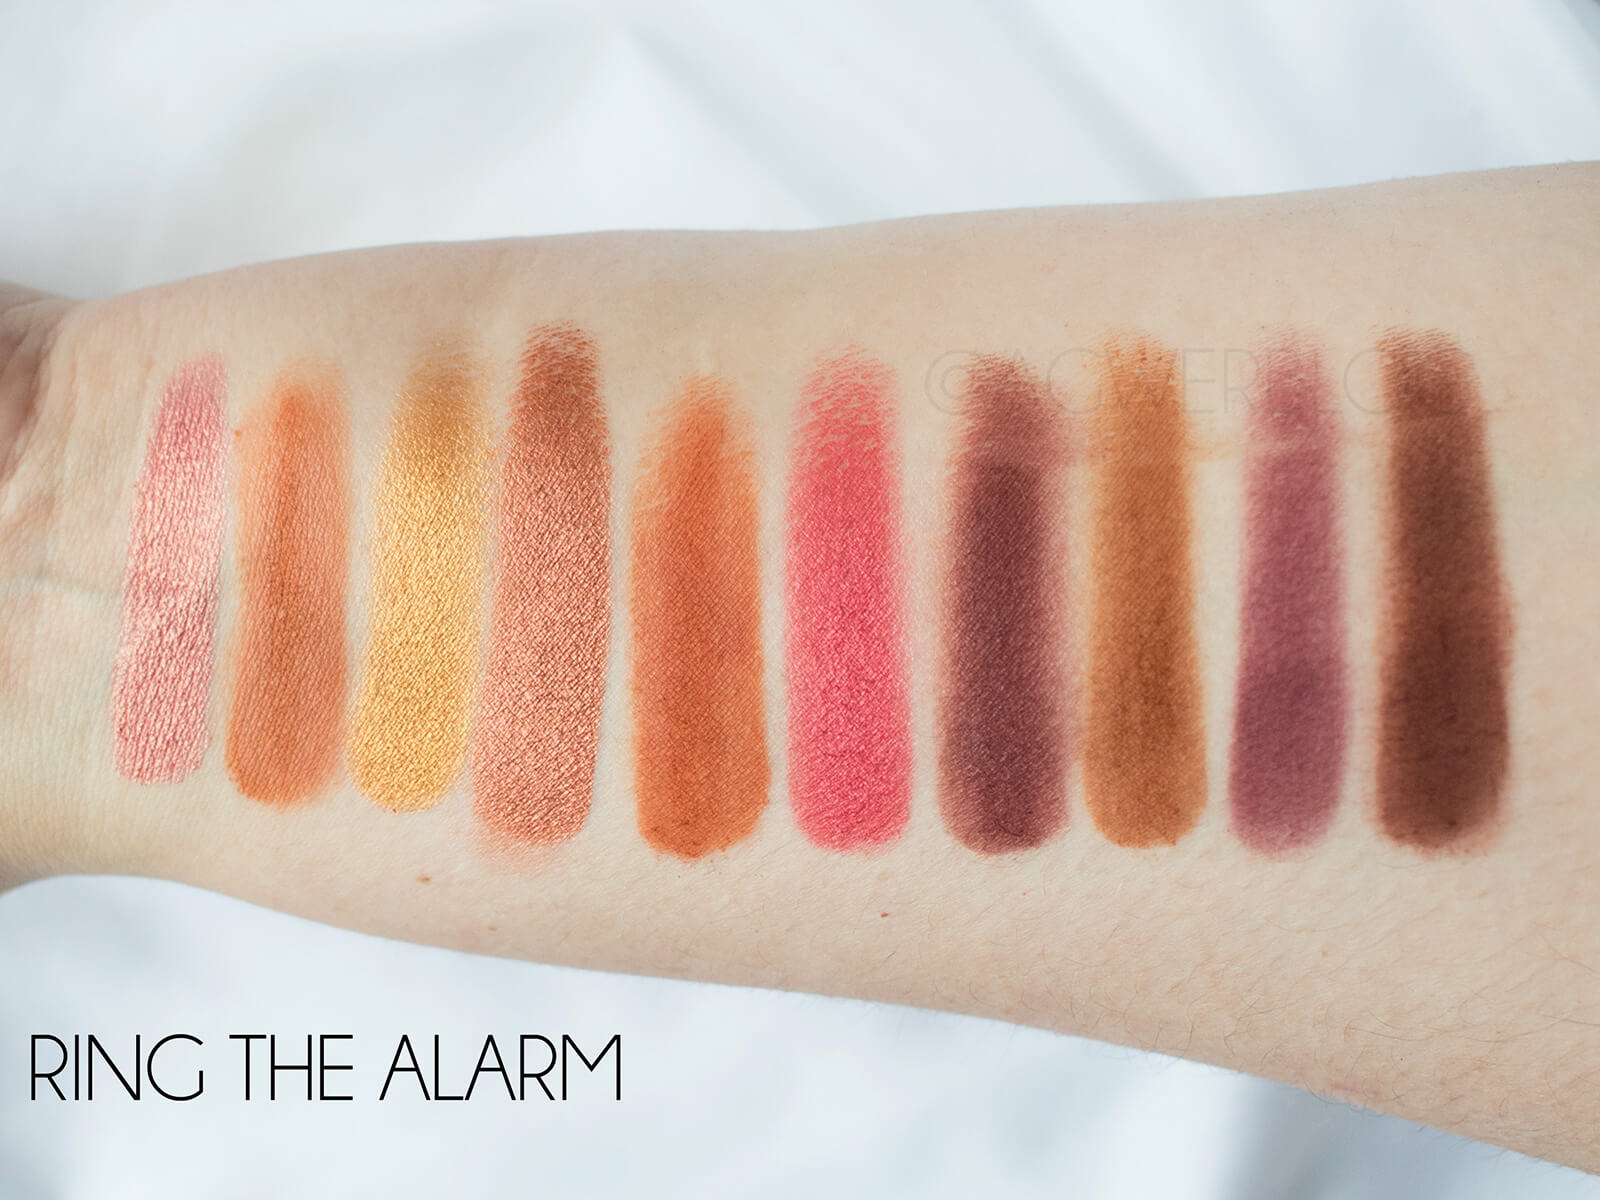 MORPHE RING THE ALARM SWATCHES